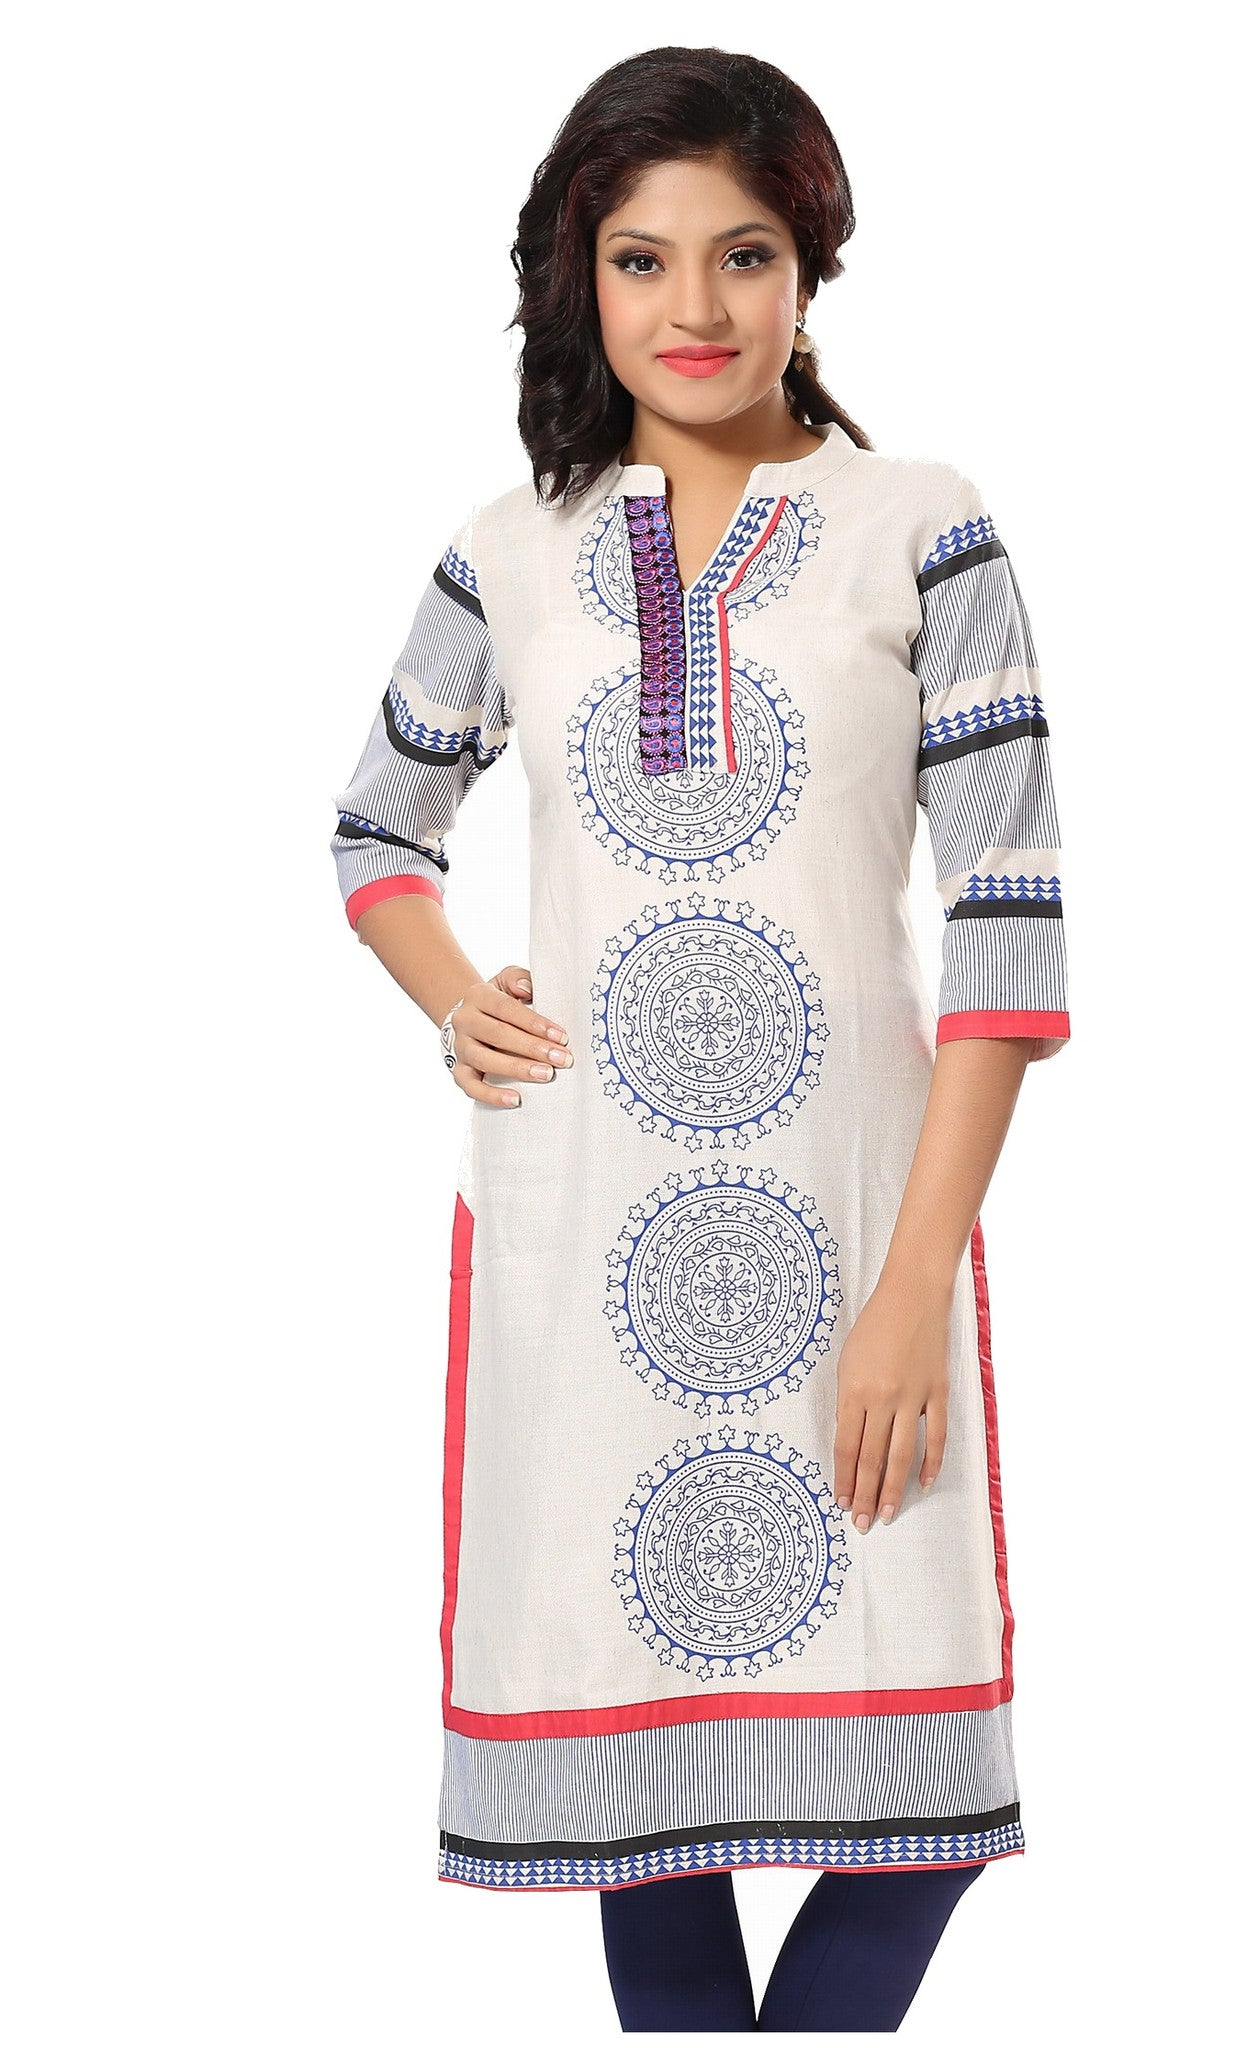 Charismatic chakra off white and blue printed cotton long kurti - Boutique4India Inc.